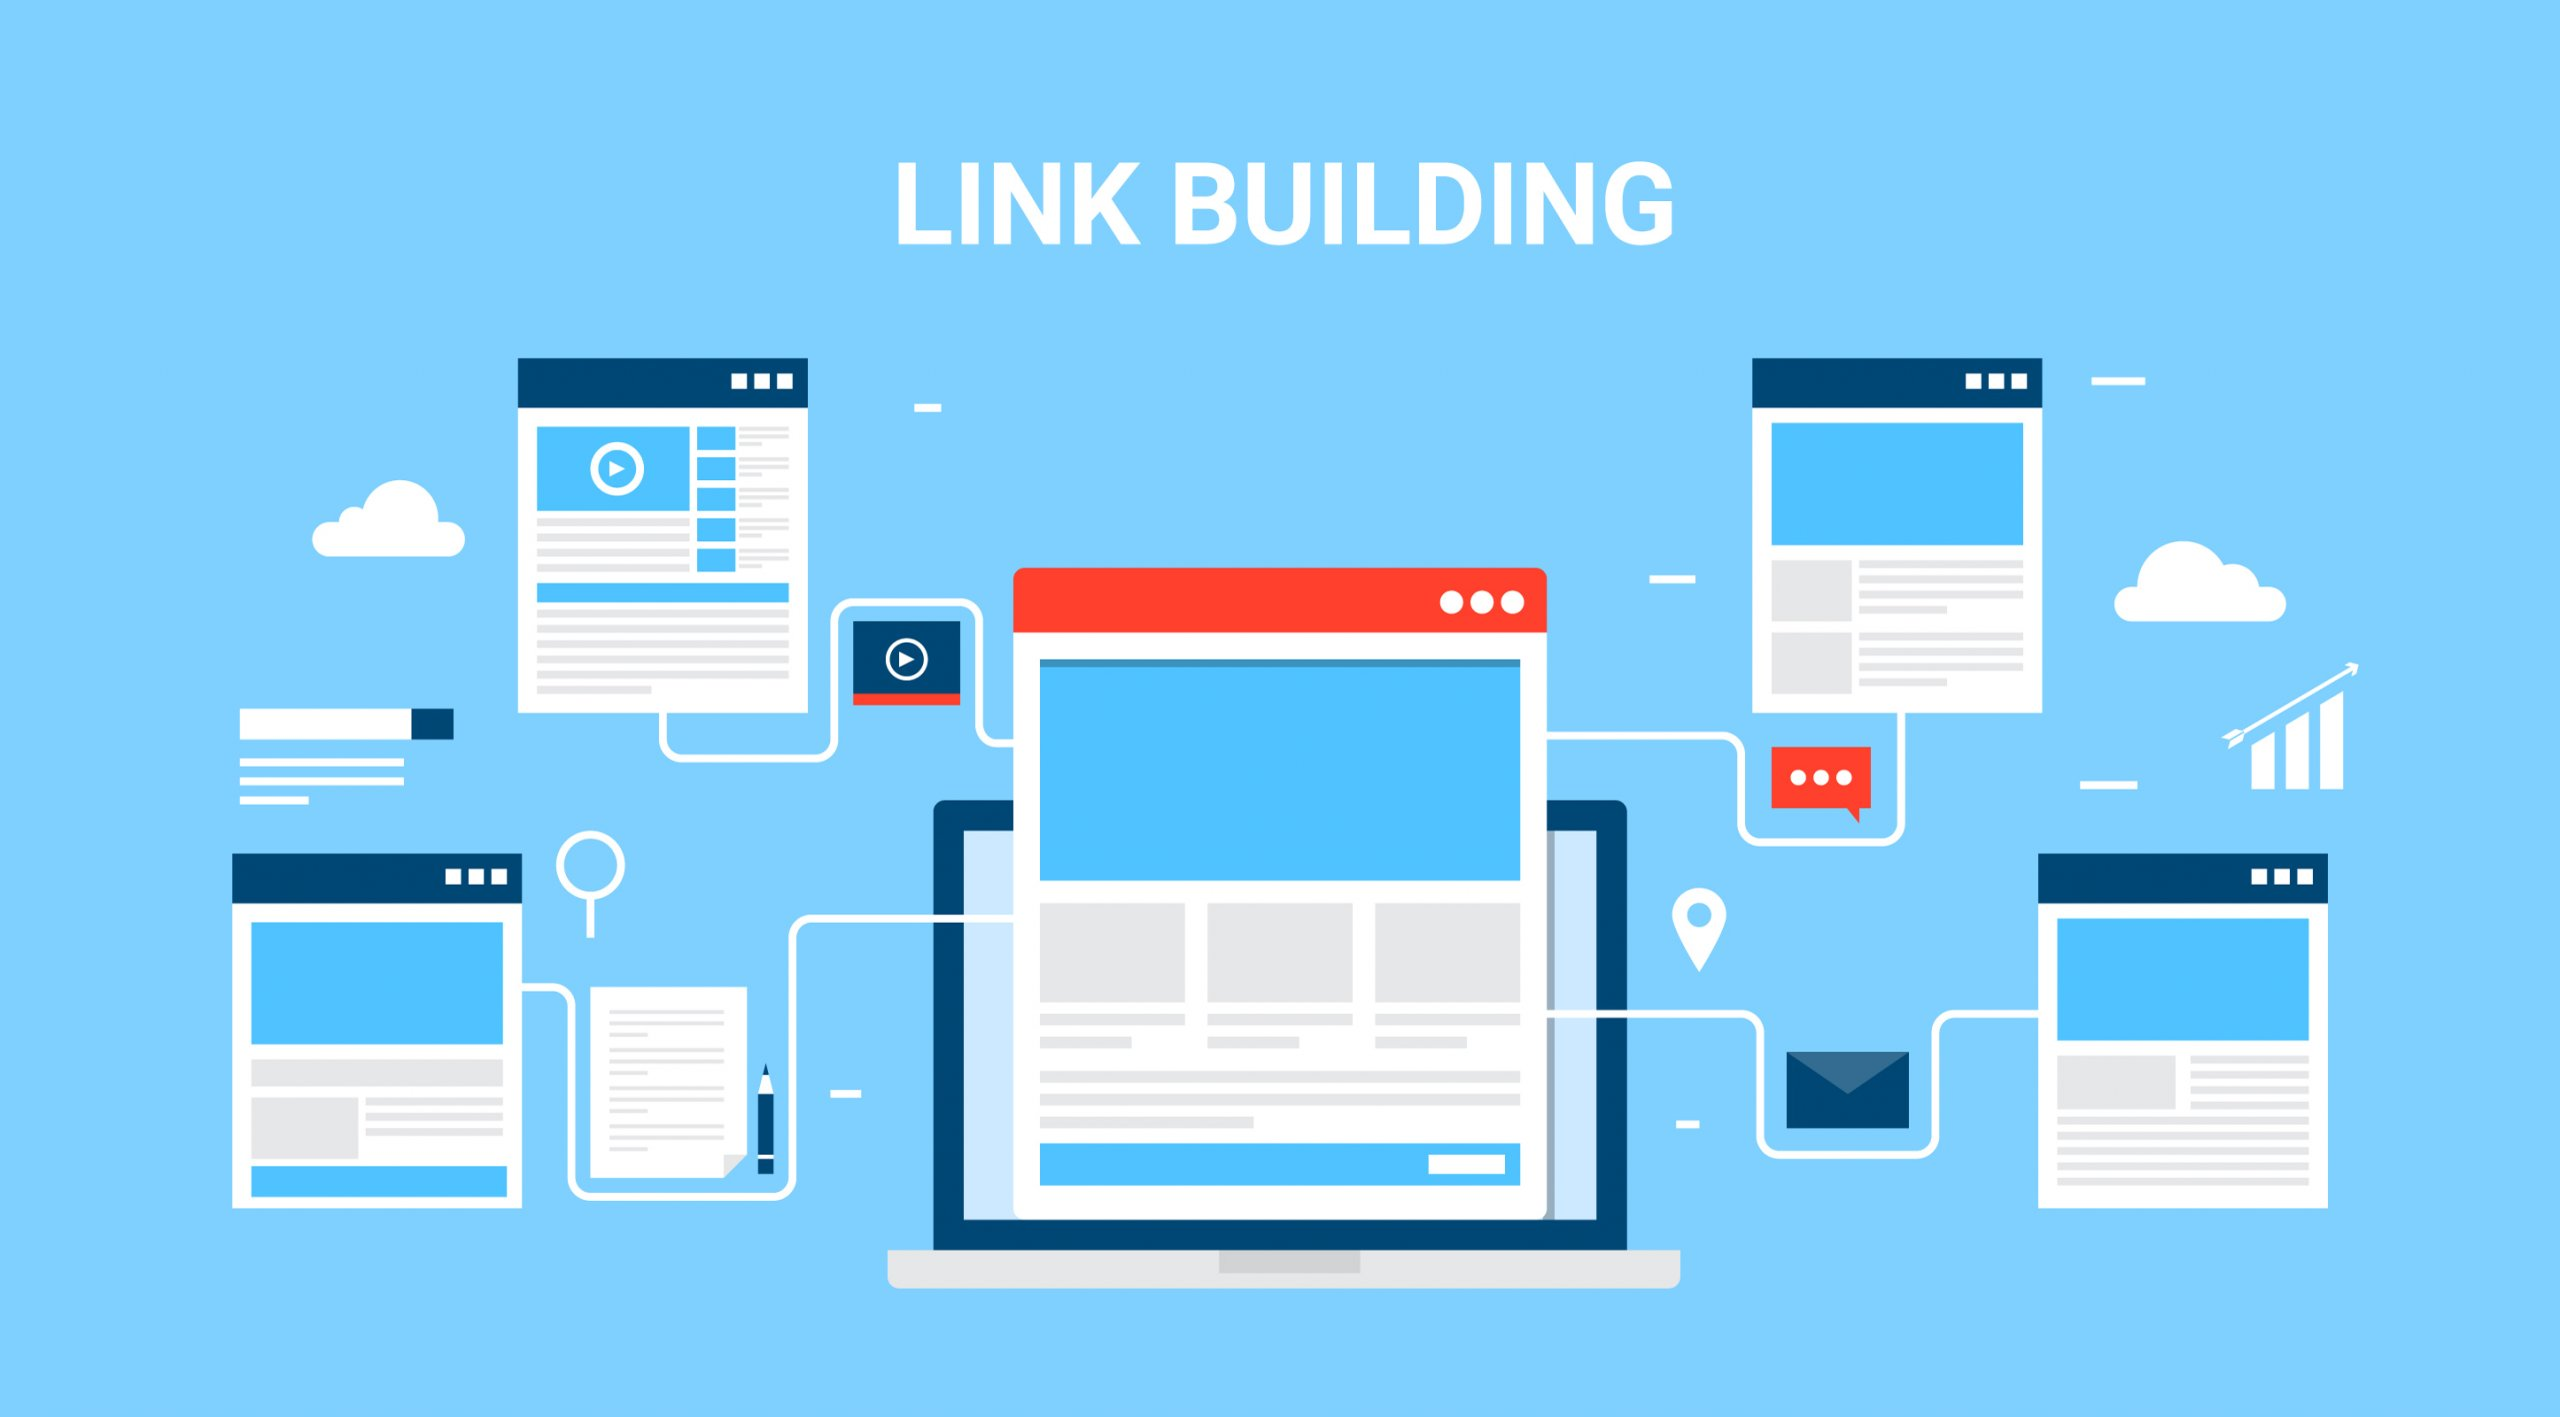 Does Link Building Through Marketing Really Work?